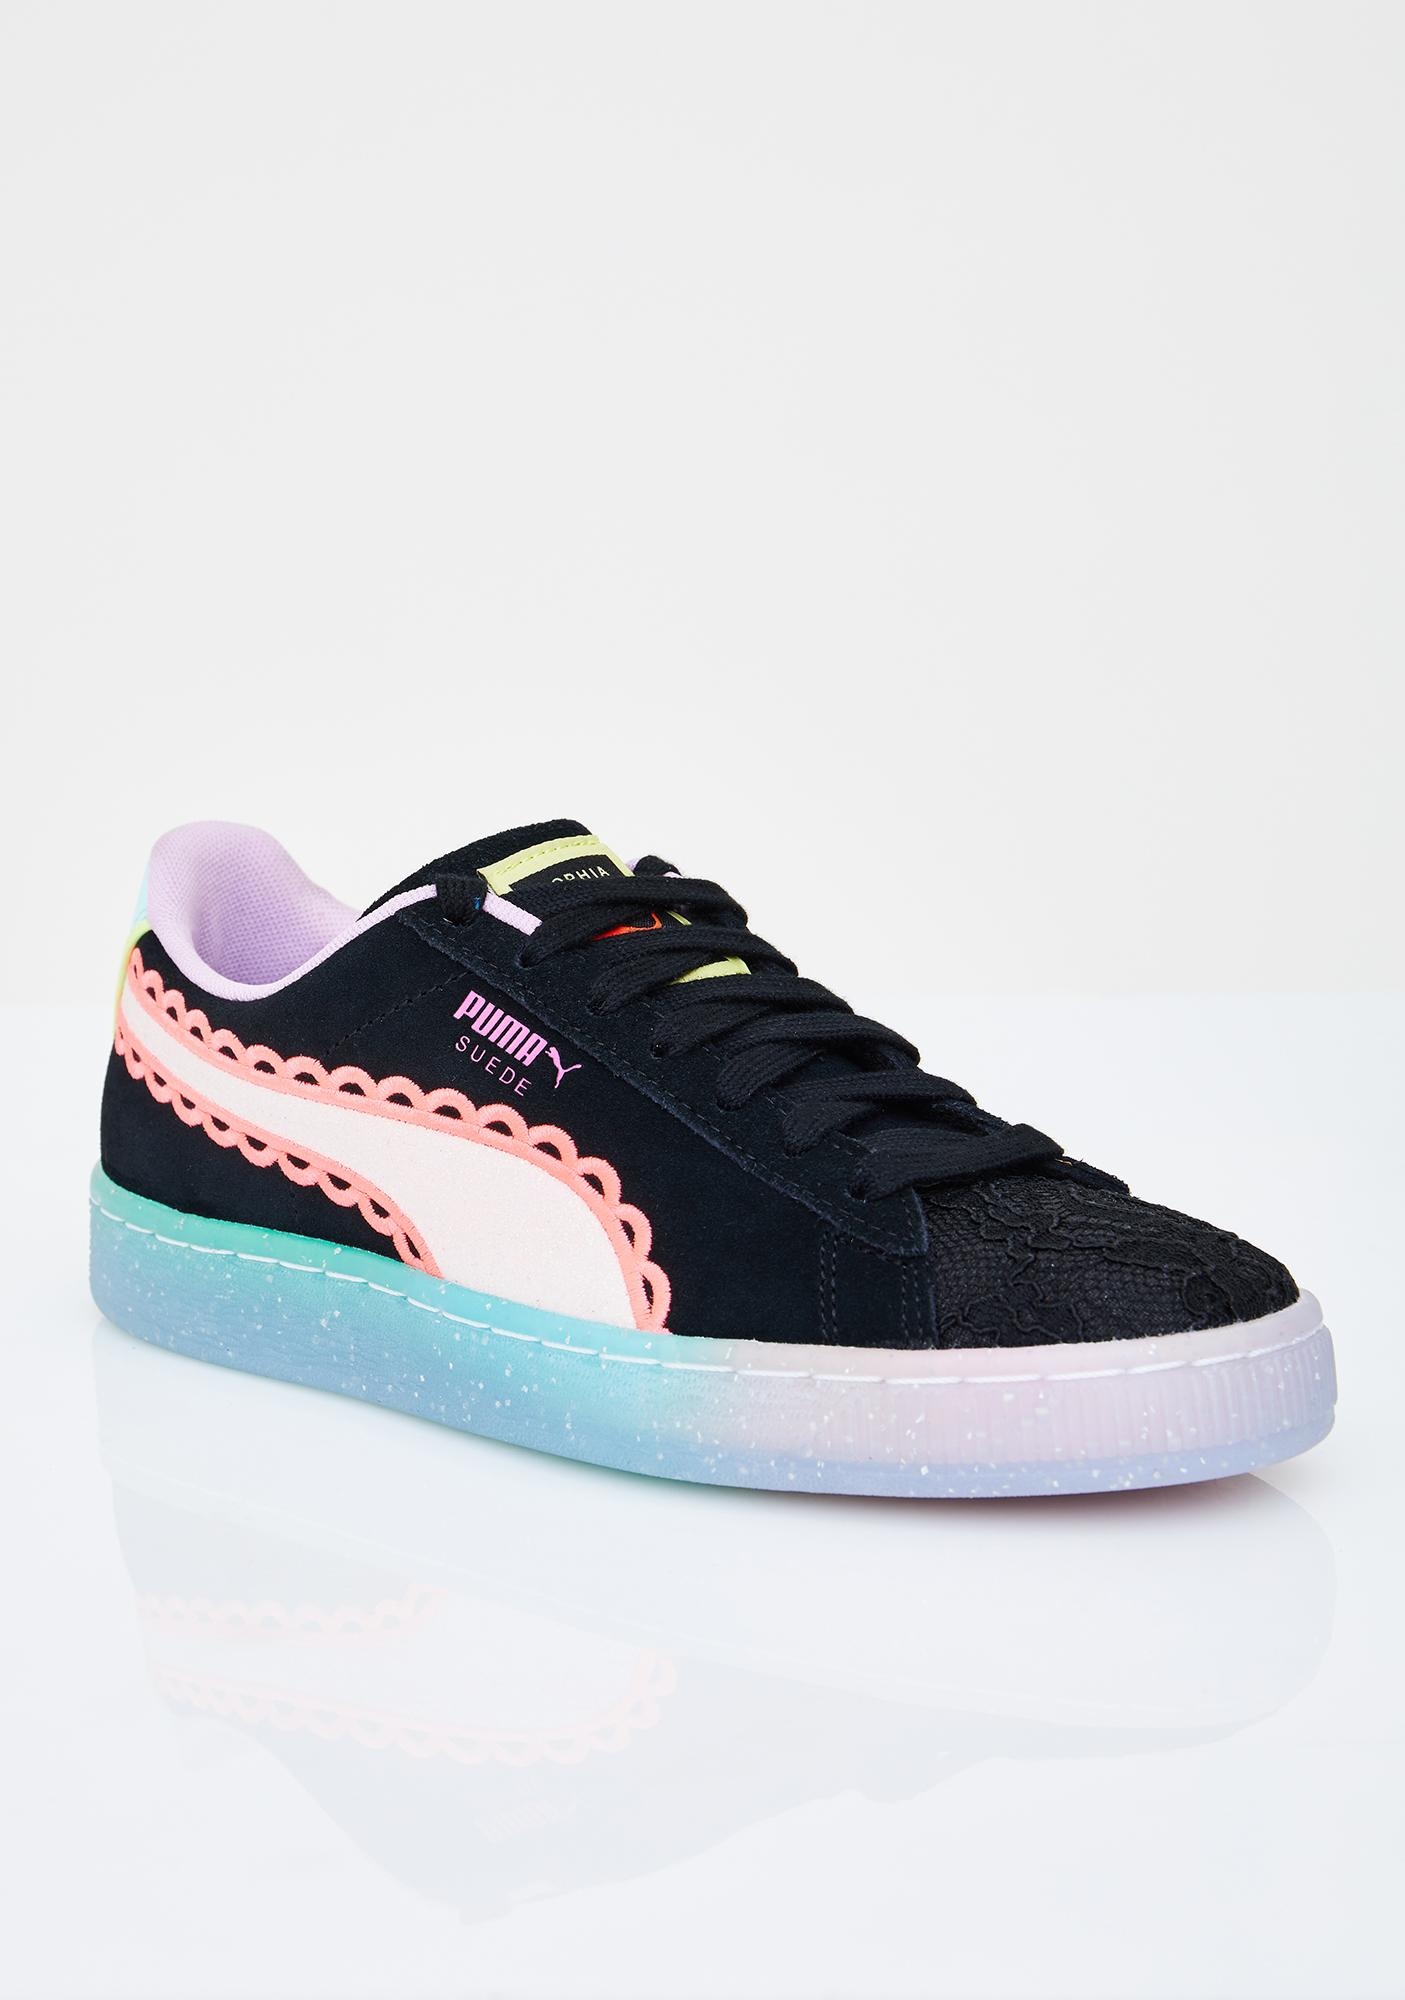 PUMA Fiery Coral Suede Sophia Webster Sneakers